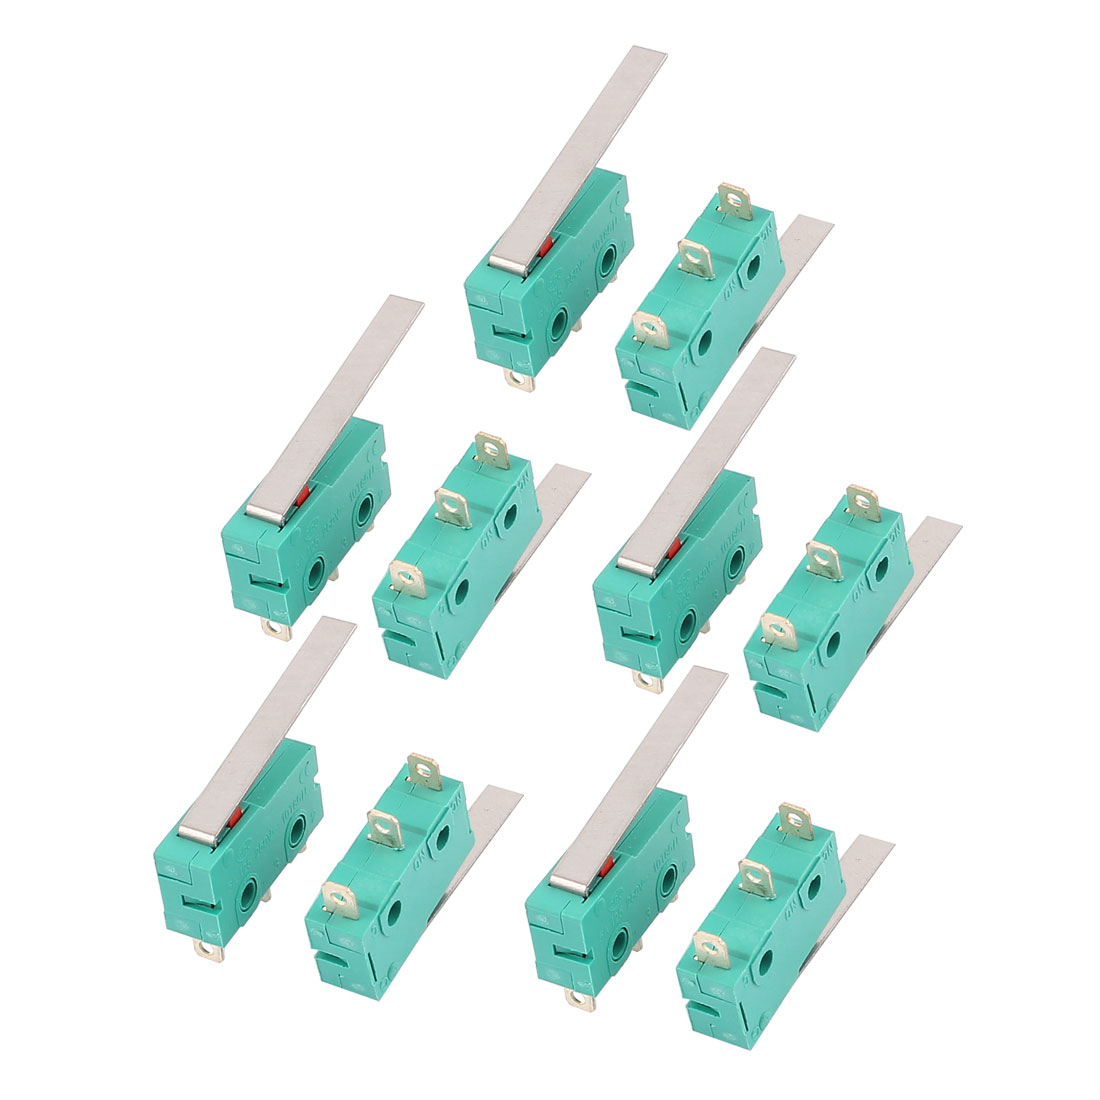 10 pcs AC 250V/125V 5A Long Lever Push Button SPDT Momentary Micro Limit Switch